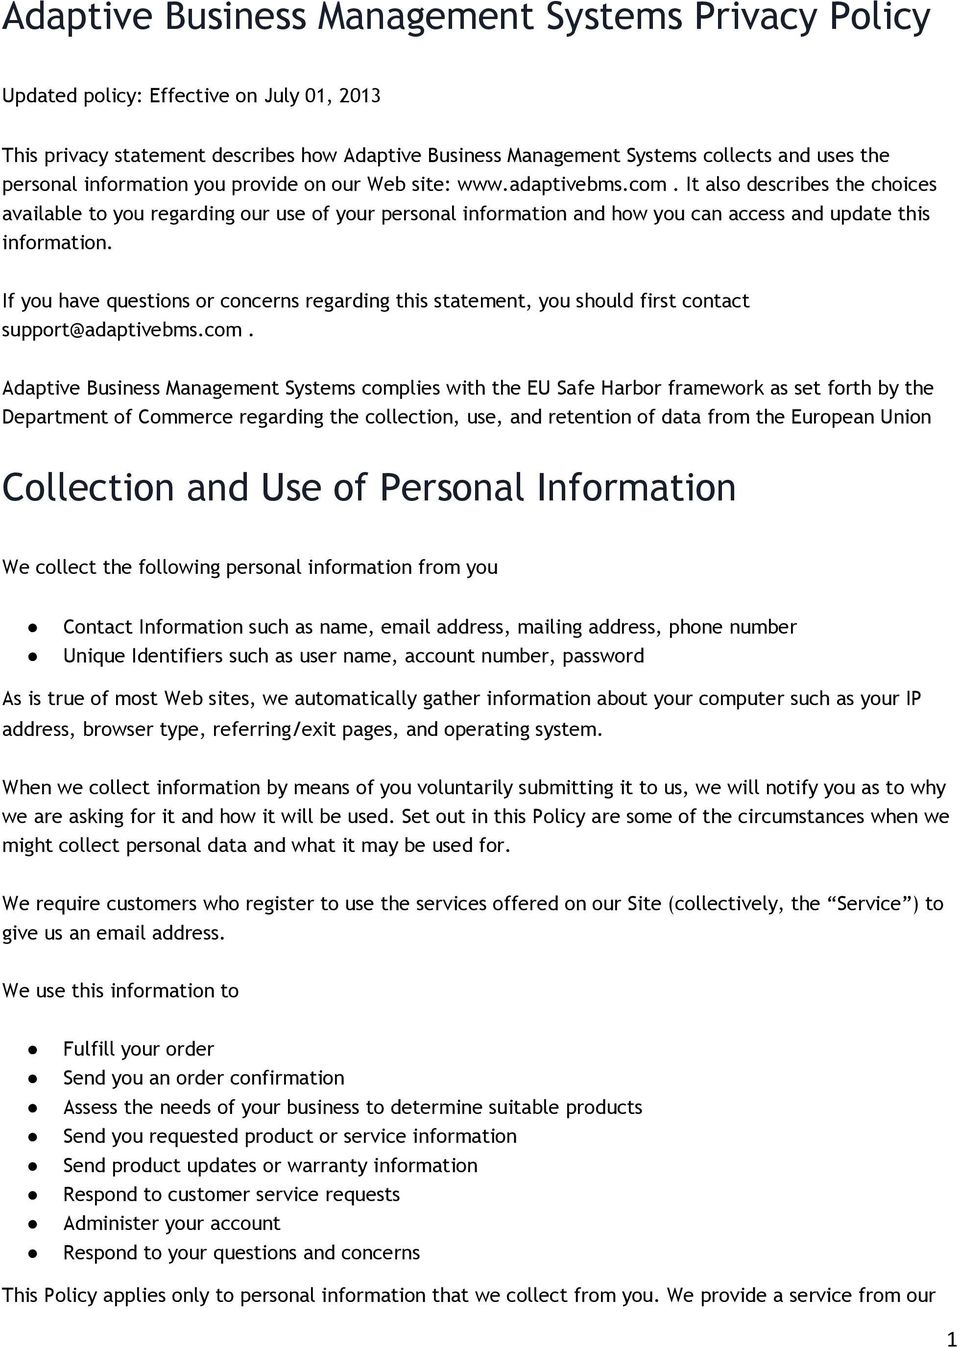 It also describes the choices available to you regarding our use of your personal information and how you can access and update this information.